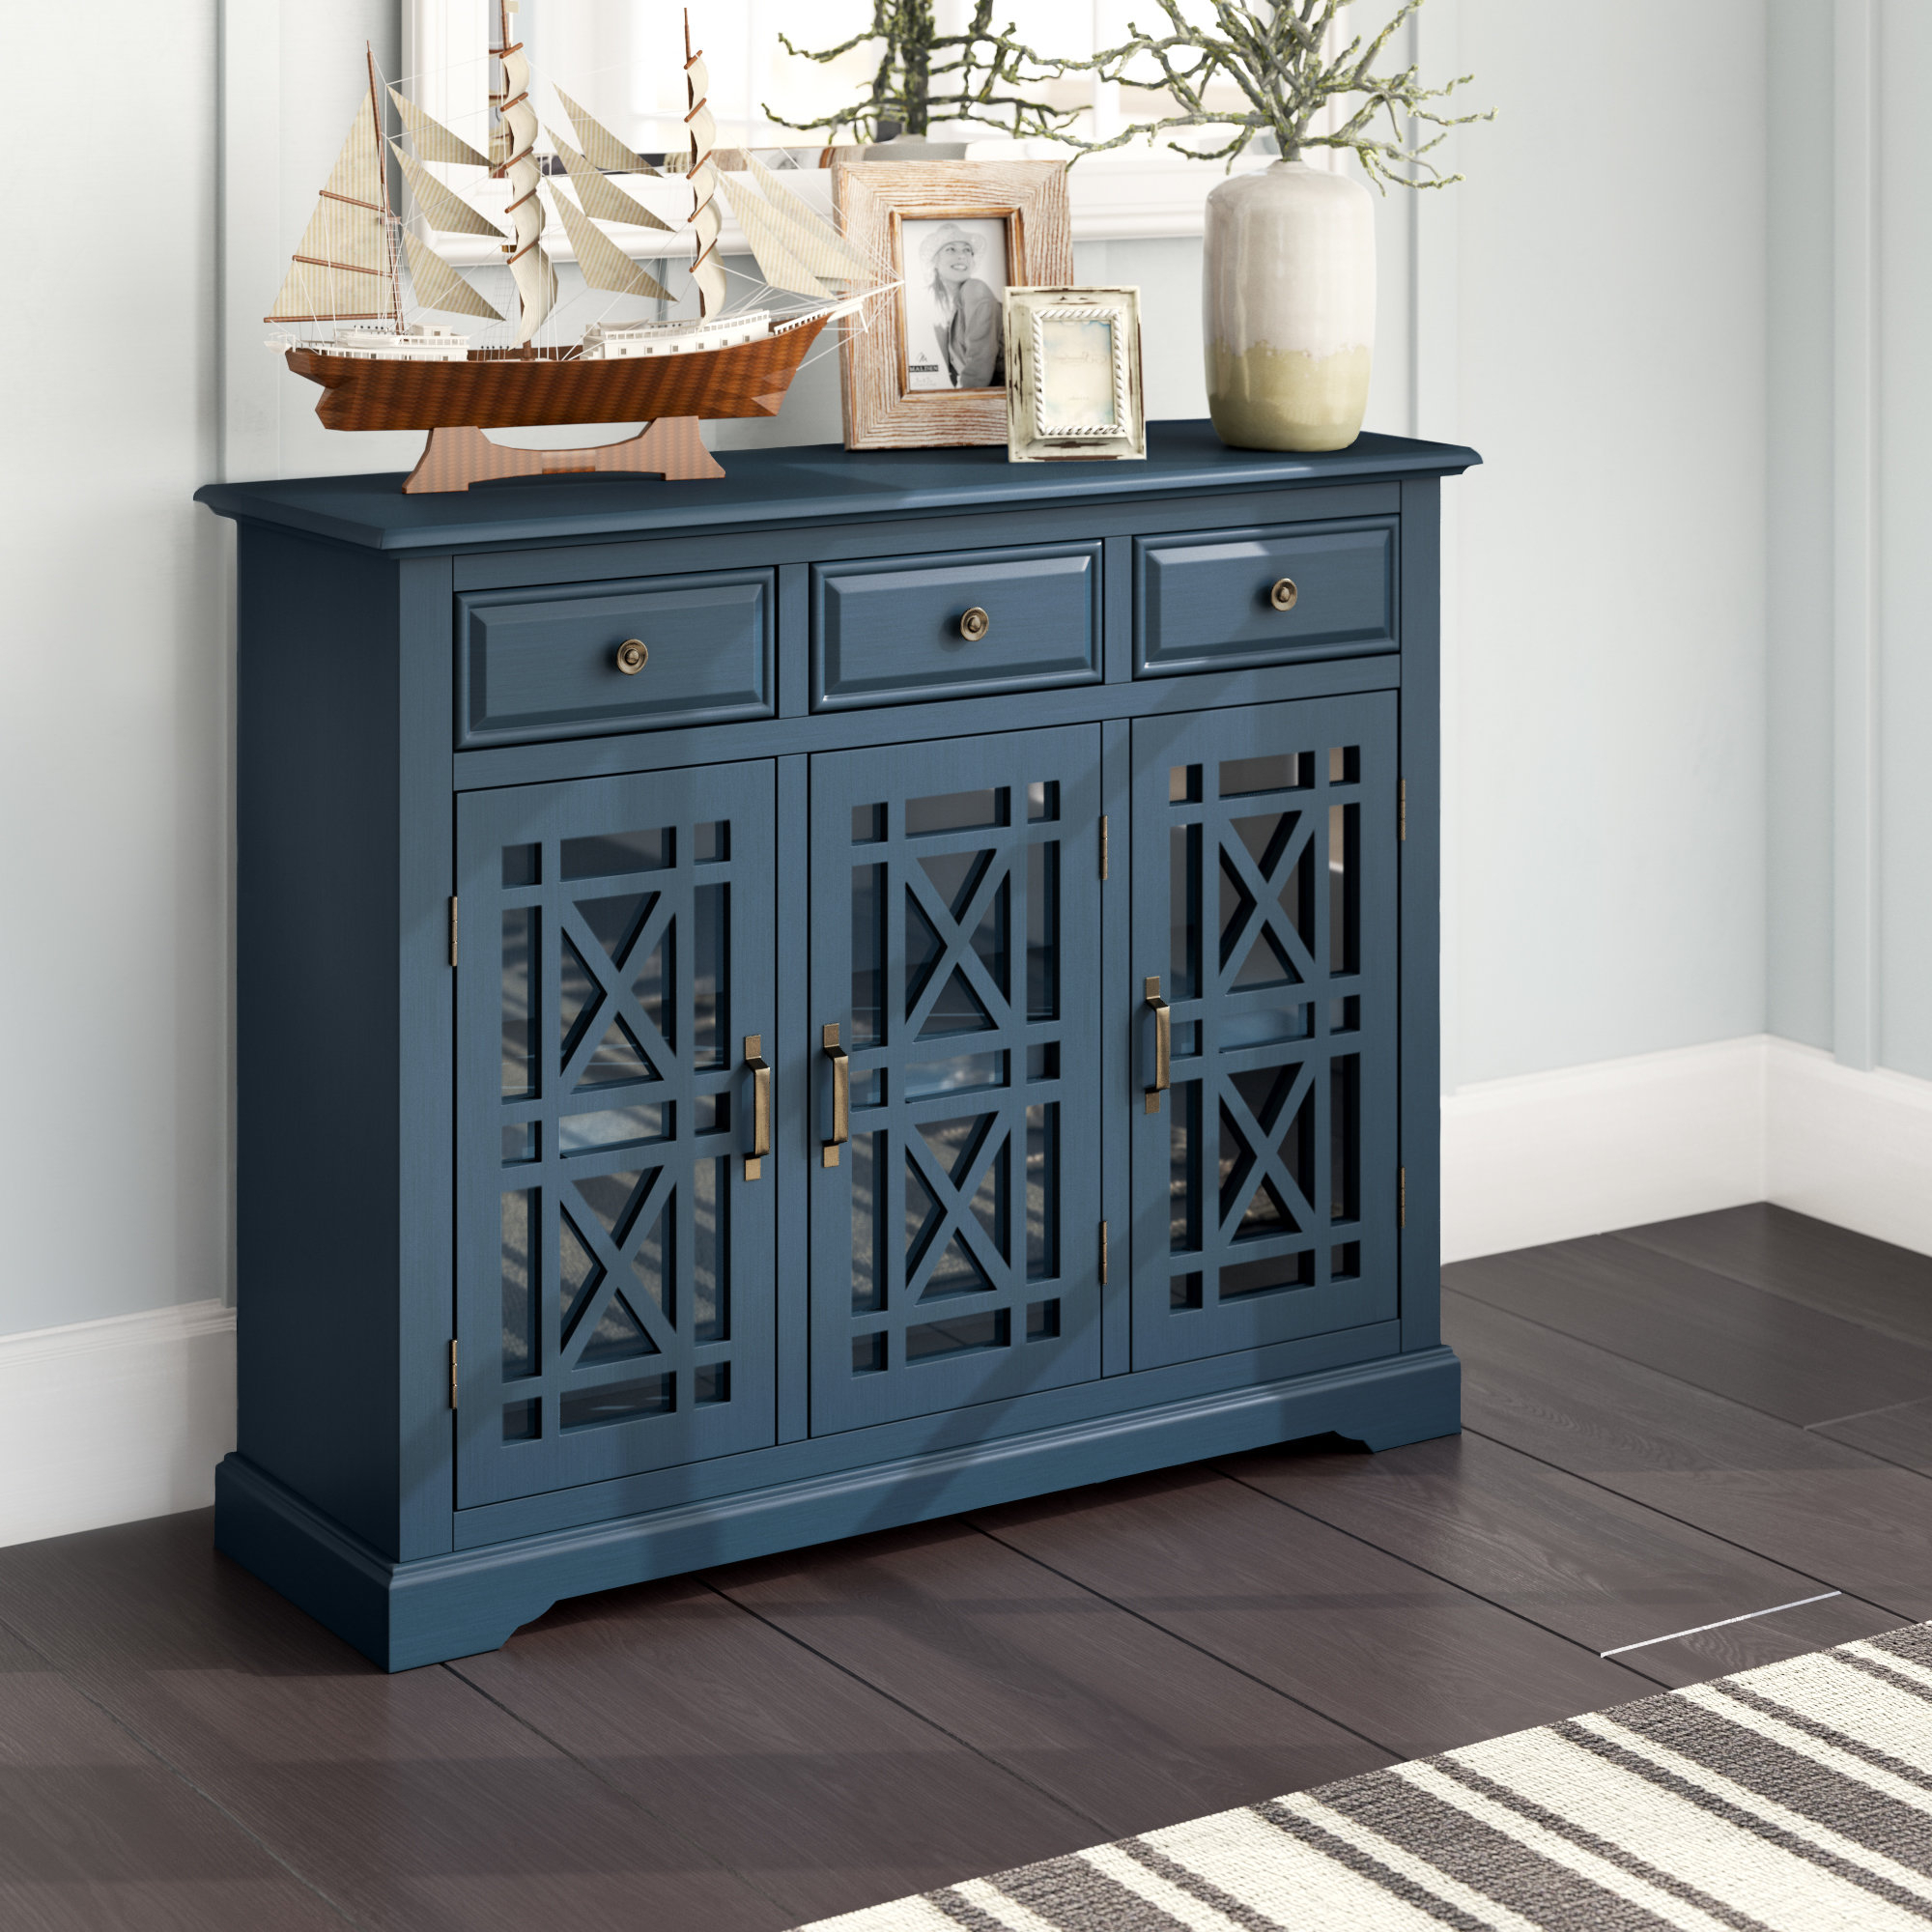 Breakwater Bay Winston Sideboard & Reviews | Wayfair For Knoxville Sideboards (View 4 of 20)